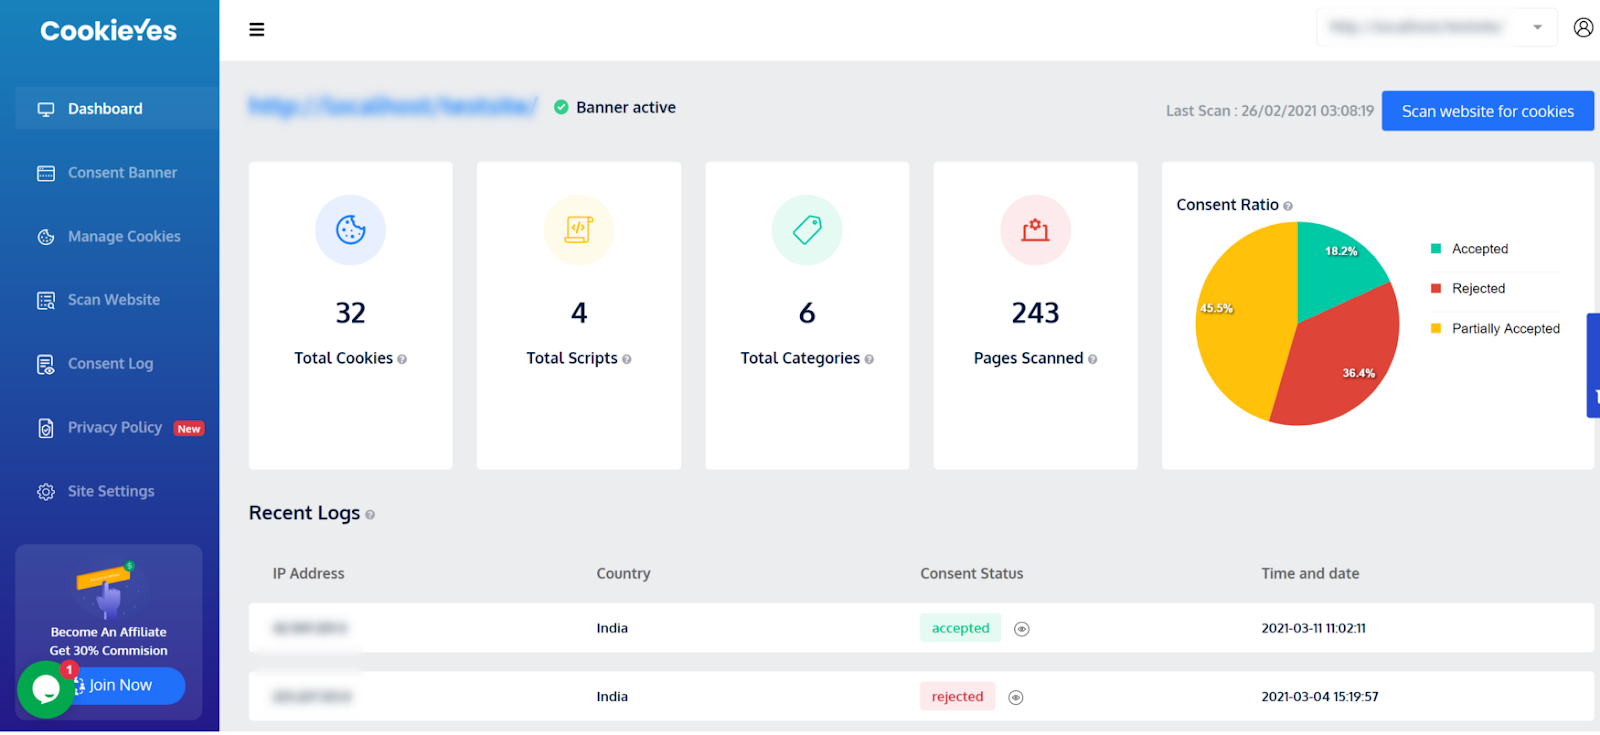 cookieyes cookie consent solution dashboard